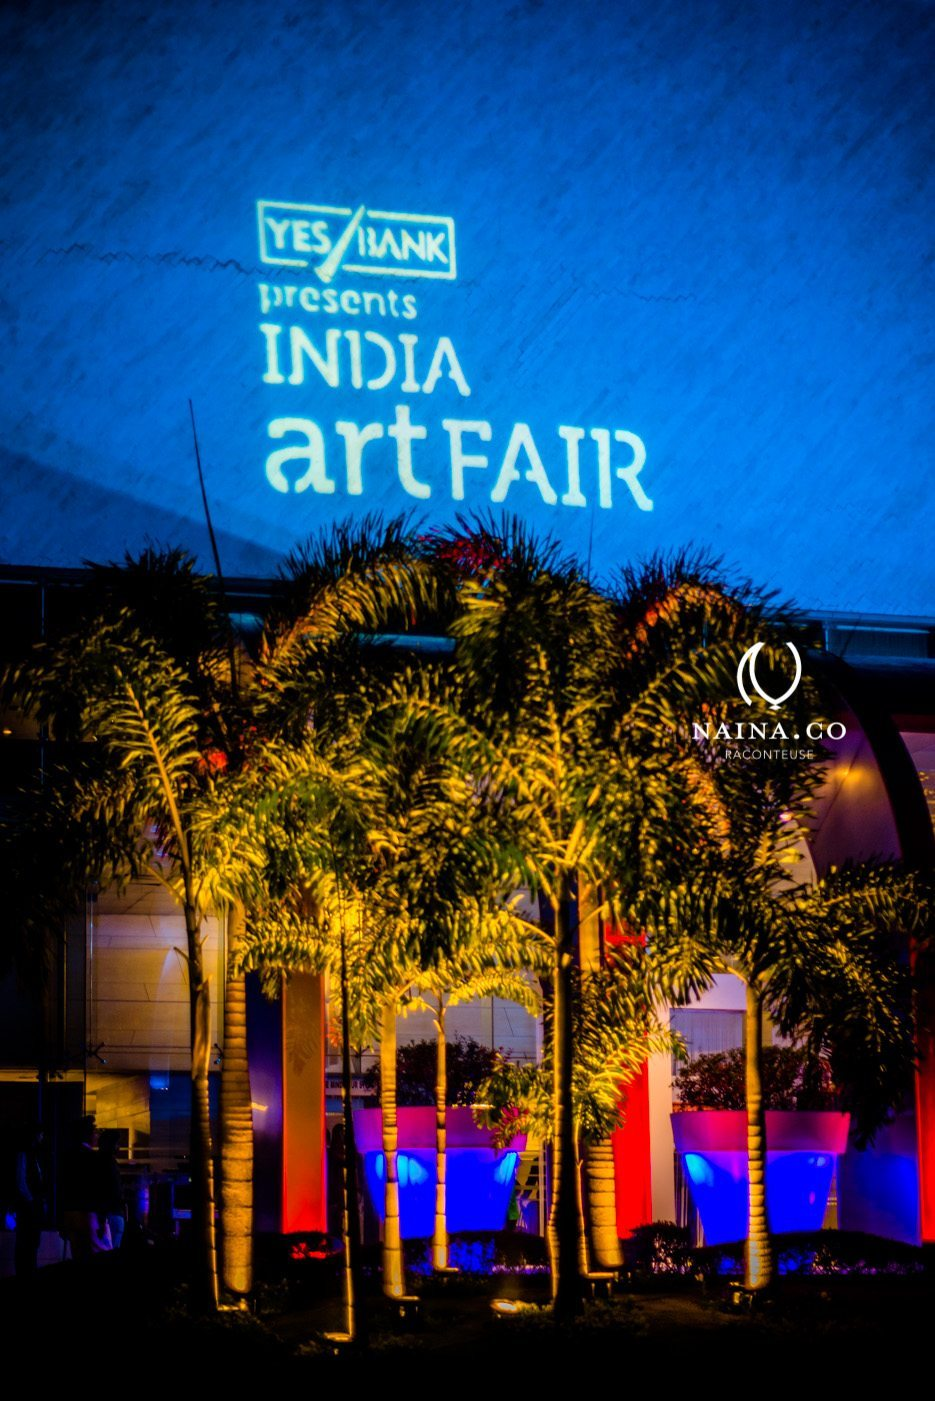 Naina.co-Raconteuse-Storyteller-Photographer-Luxury-Starwood-Le-Meridien-India-Art-Fair-February-2014